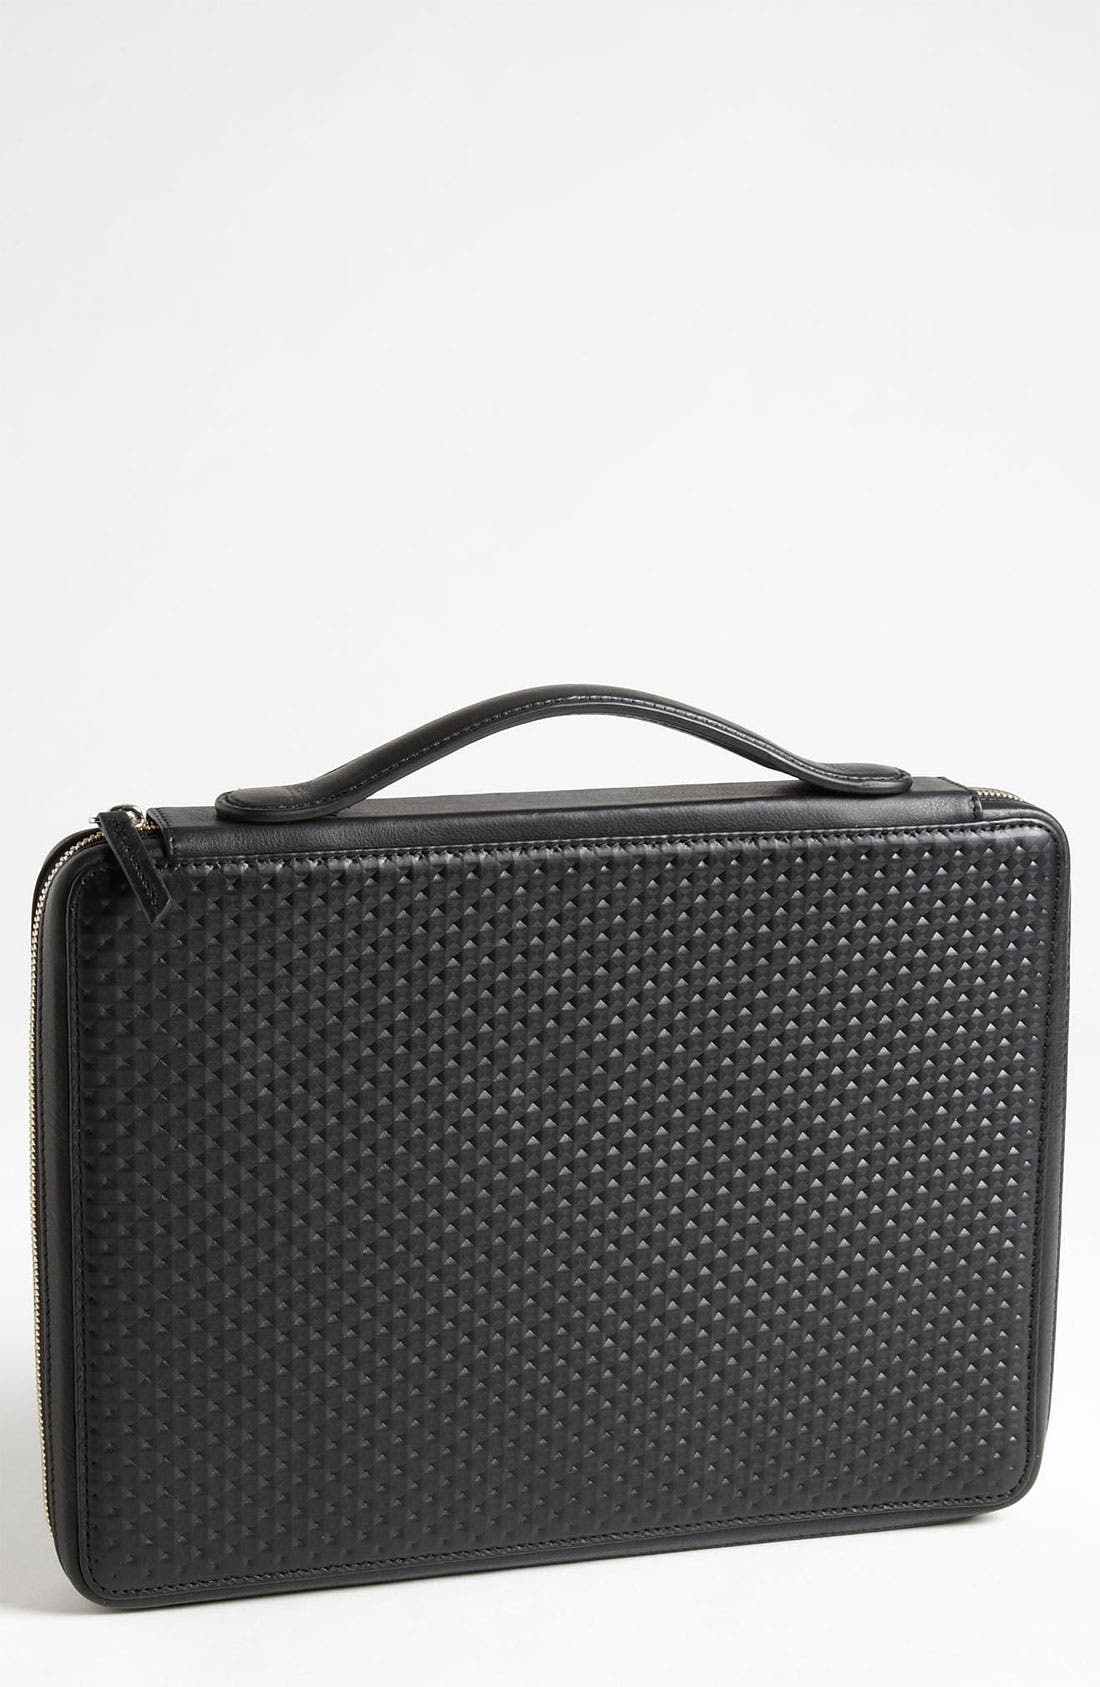 Alternate Image 1 Selected - WANT Les Essentiels de la Vie 'Kansai' Computer Case (13 Inch)